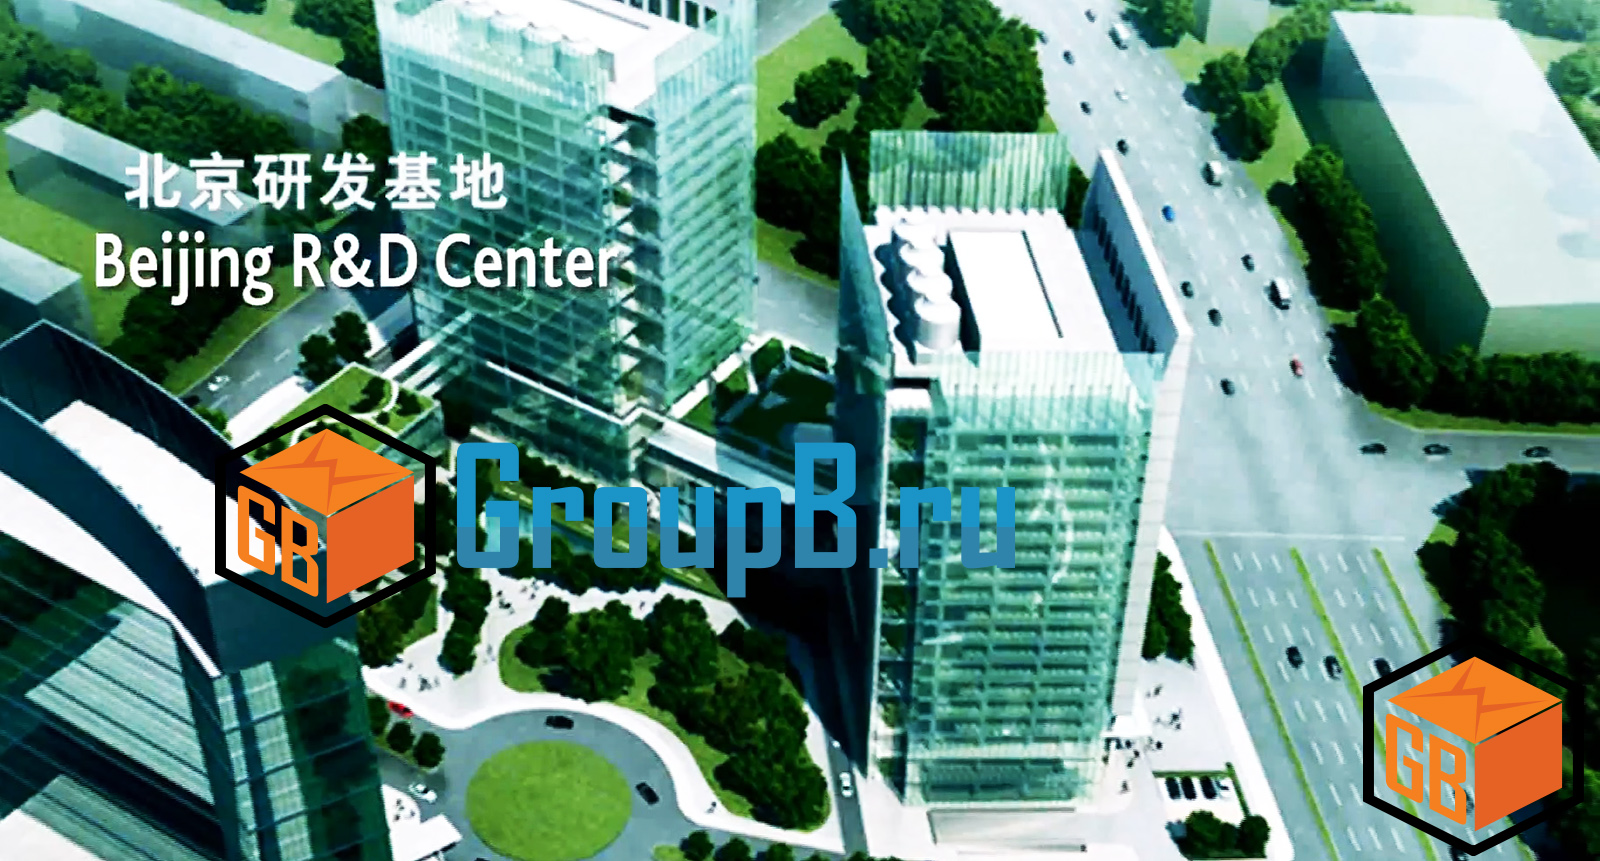 Coolpad R&D Institutes